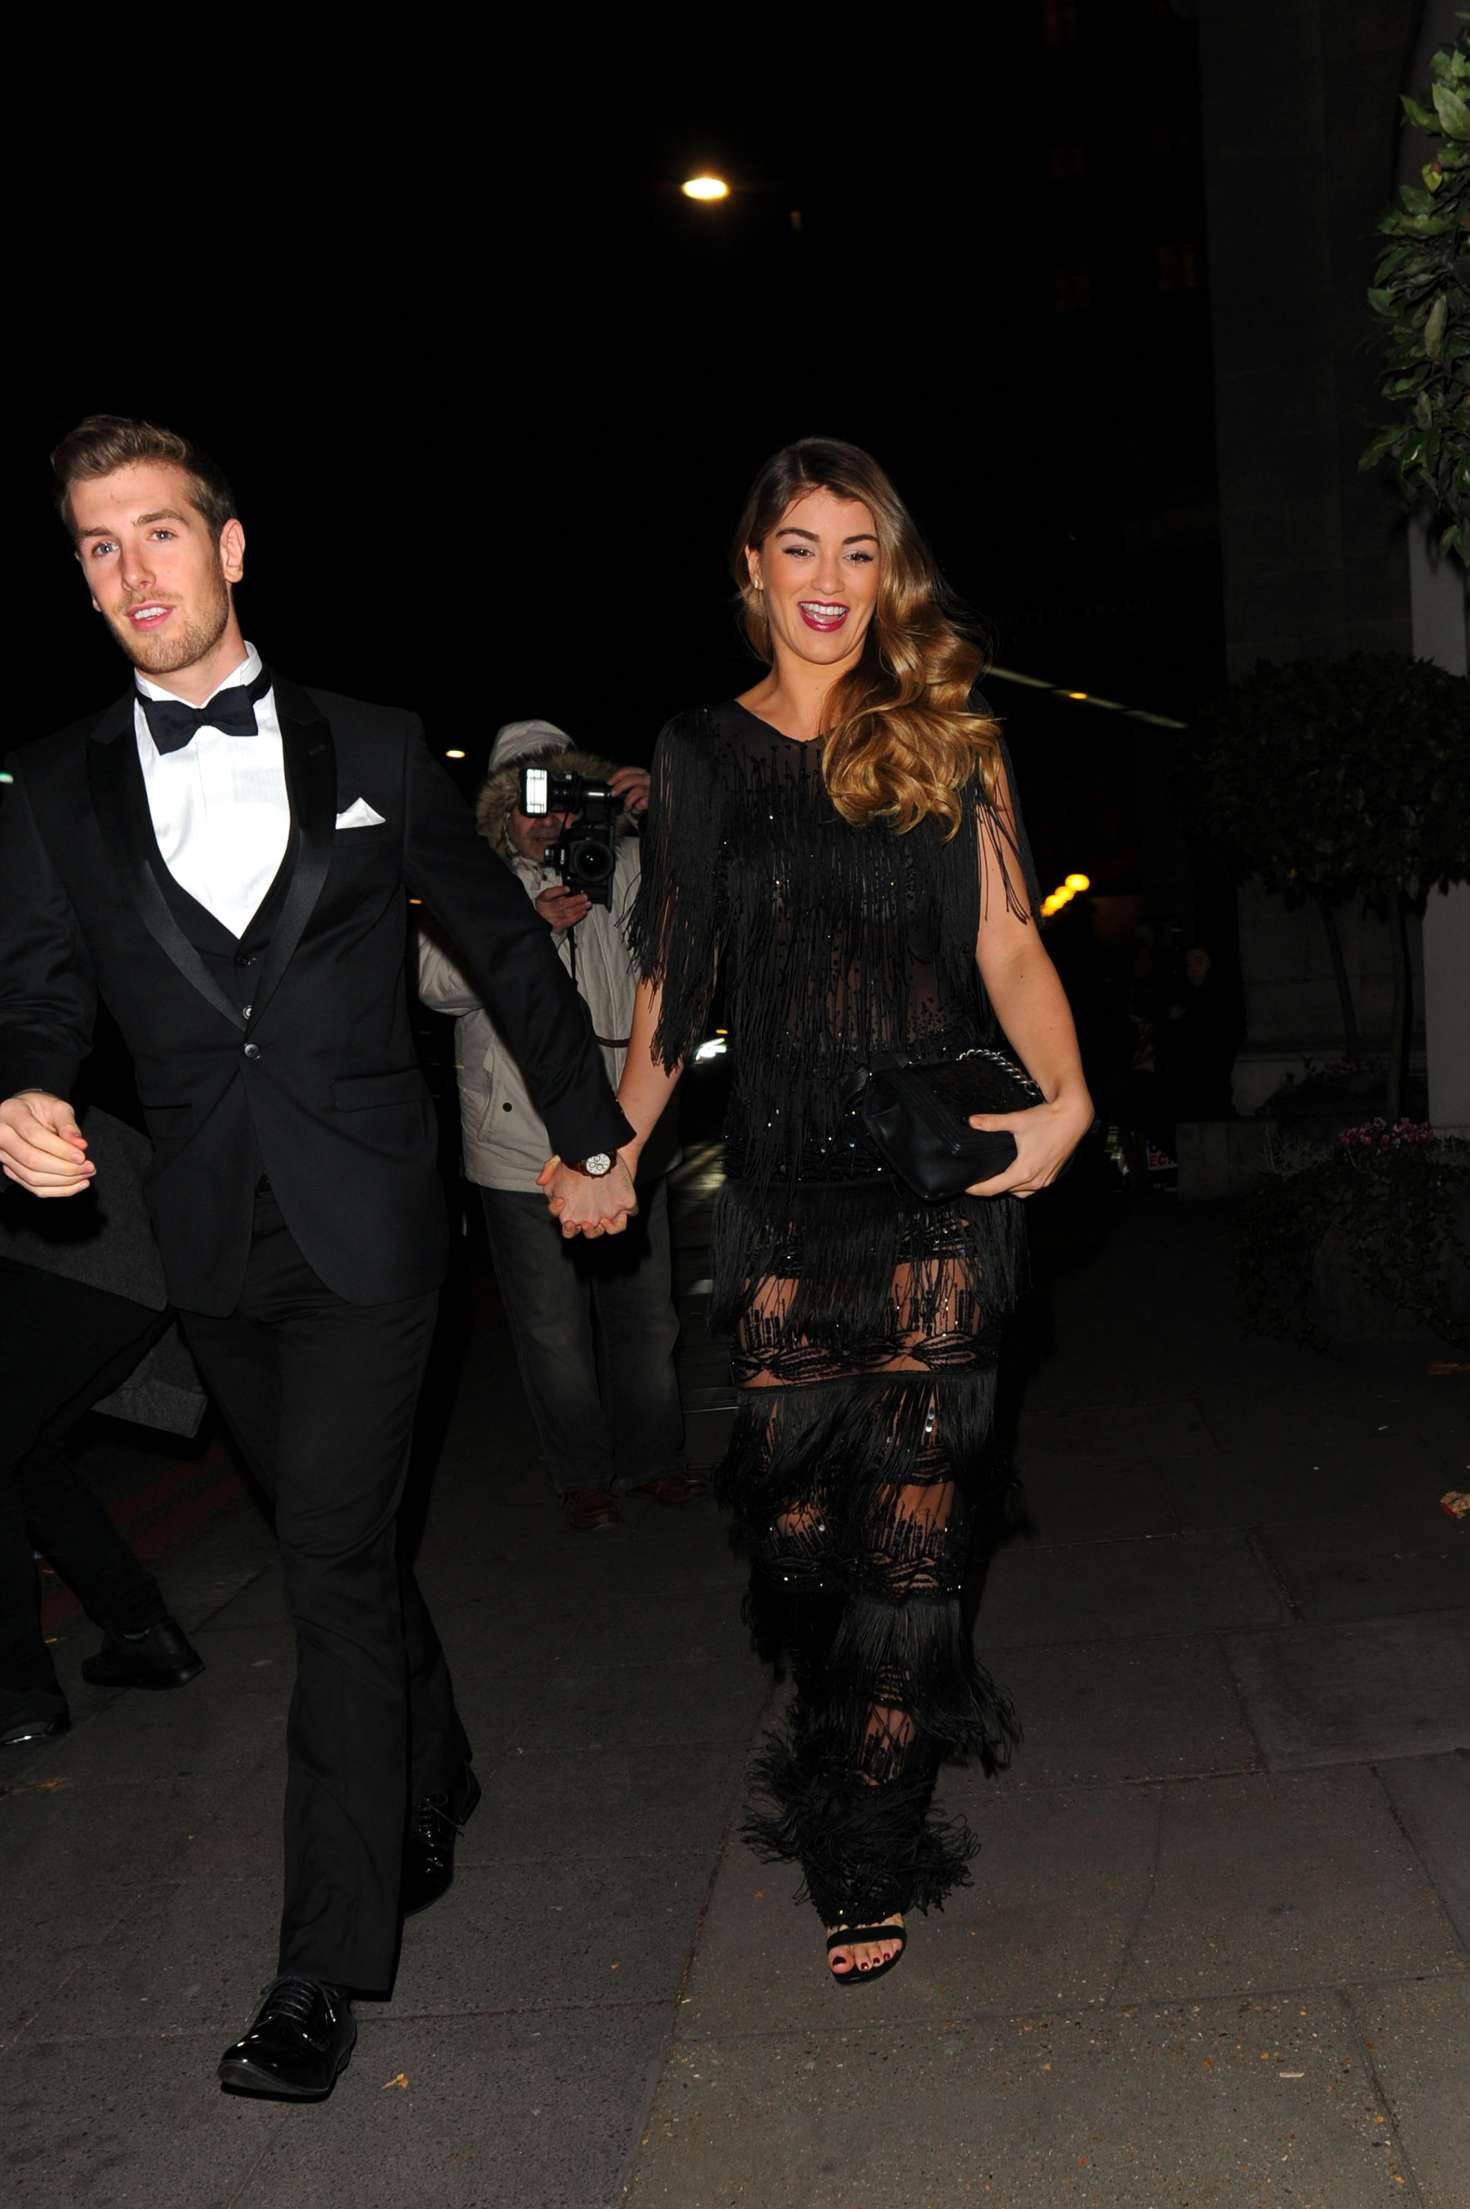 Amy Willerton 2016 : Amy Willerton: Chain Of Hope Annual Gala Ball 2016 -01